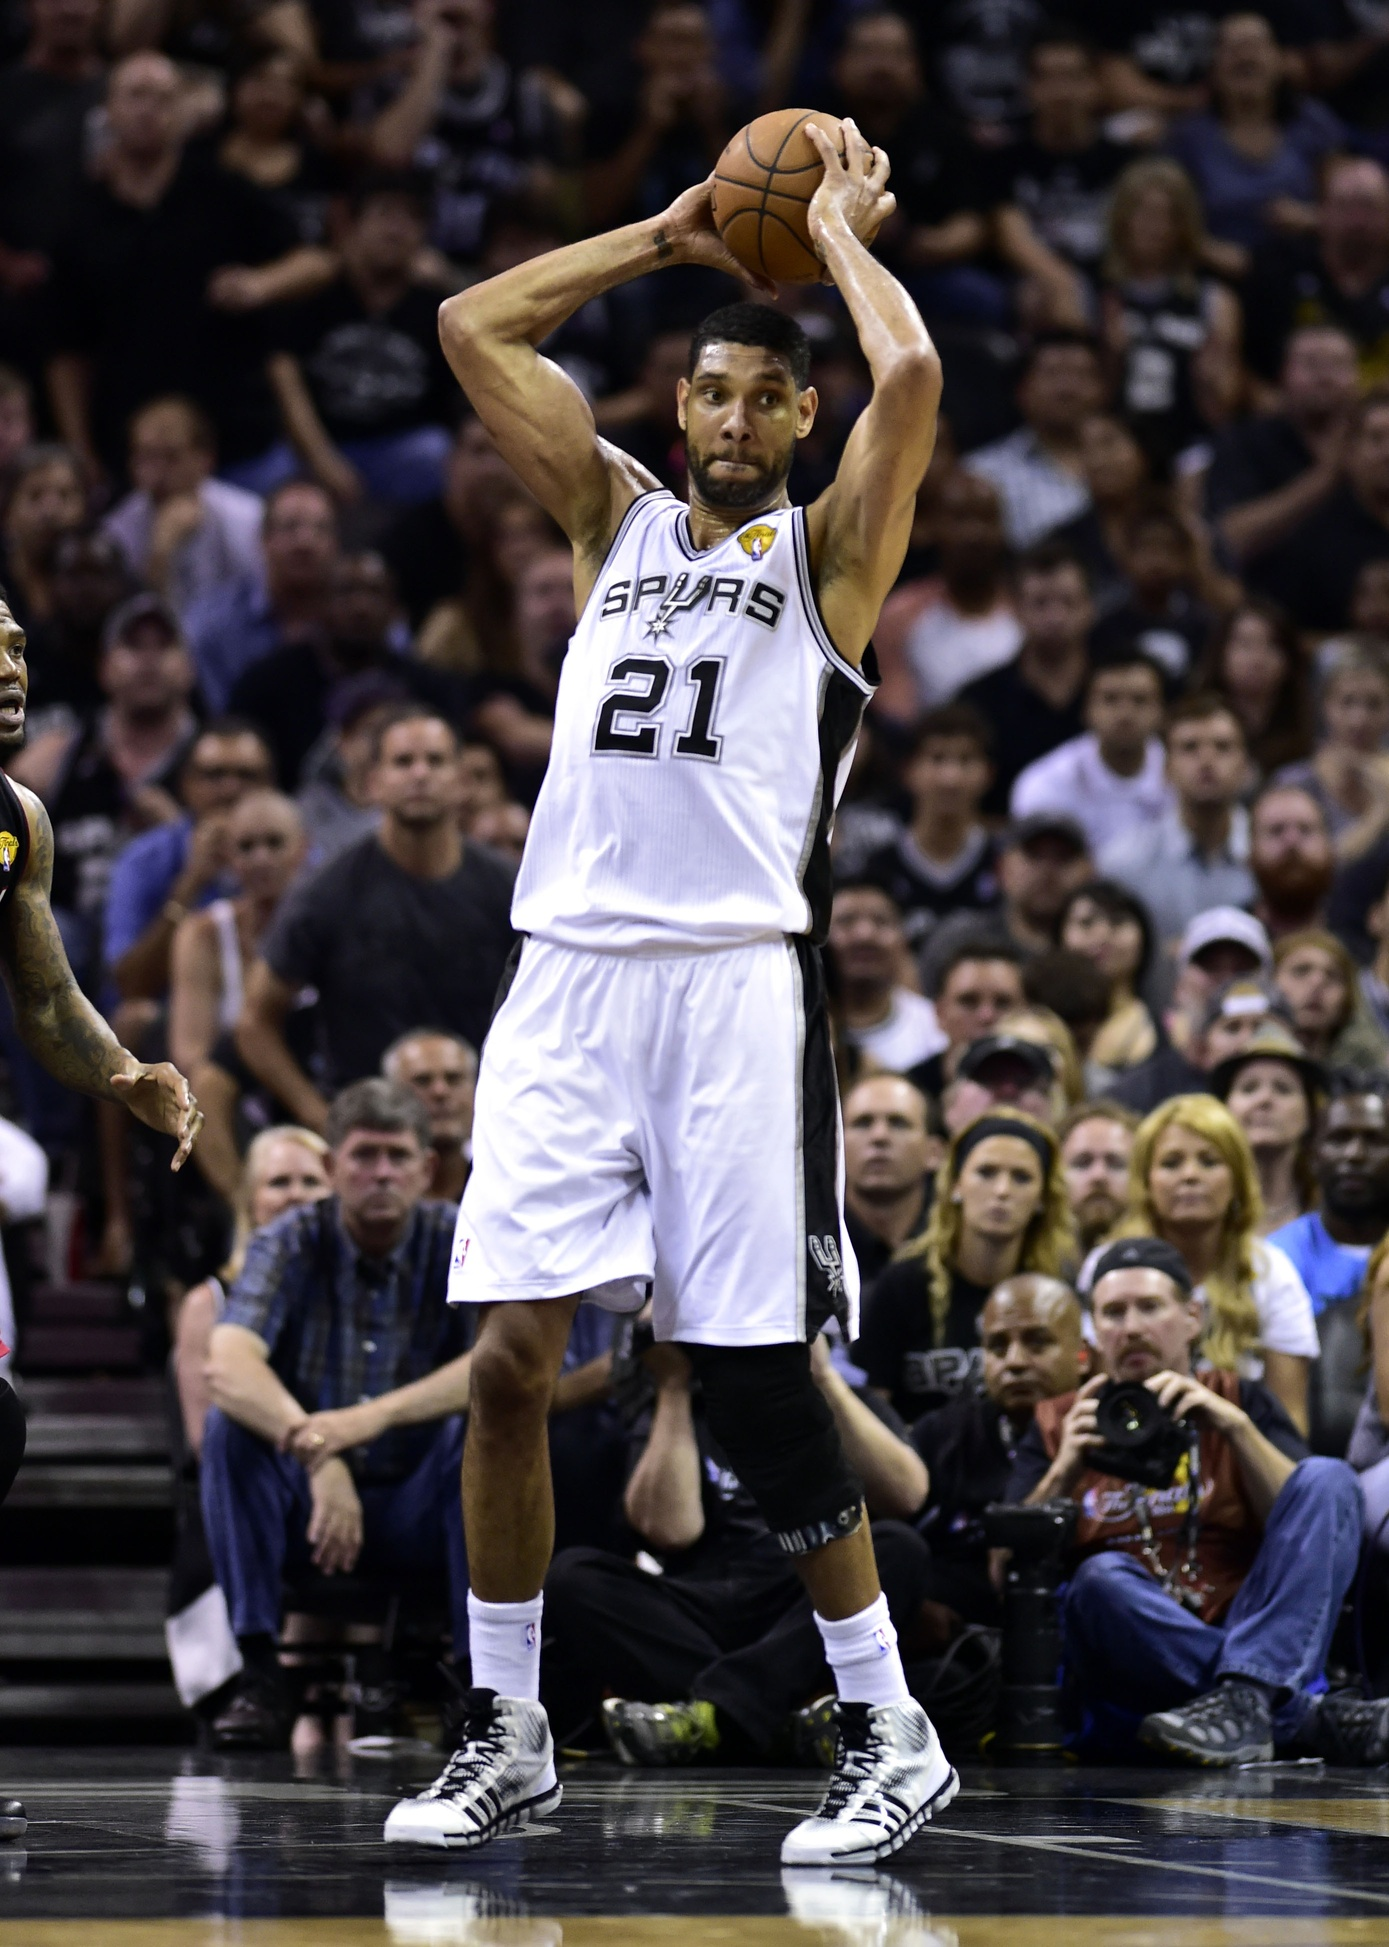 He might not stand alone relative to anyone else who's played the game, but Tim Duncan certainly stands tall, a champion after the 2013 Finals he vowed to avenge.